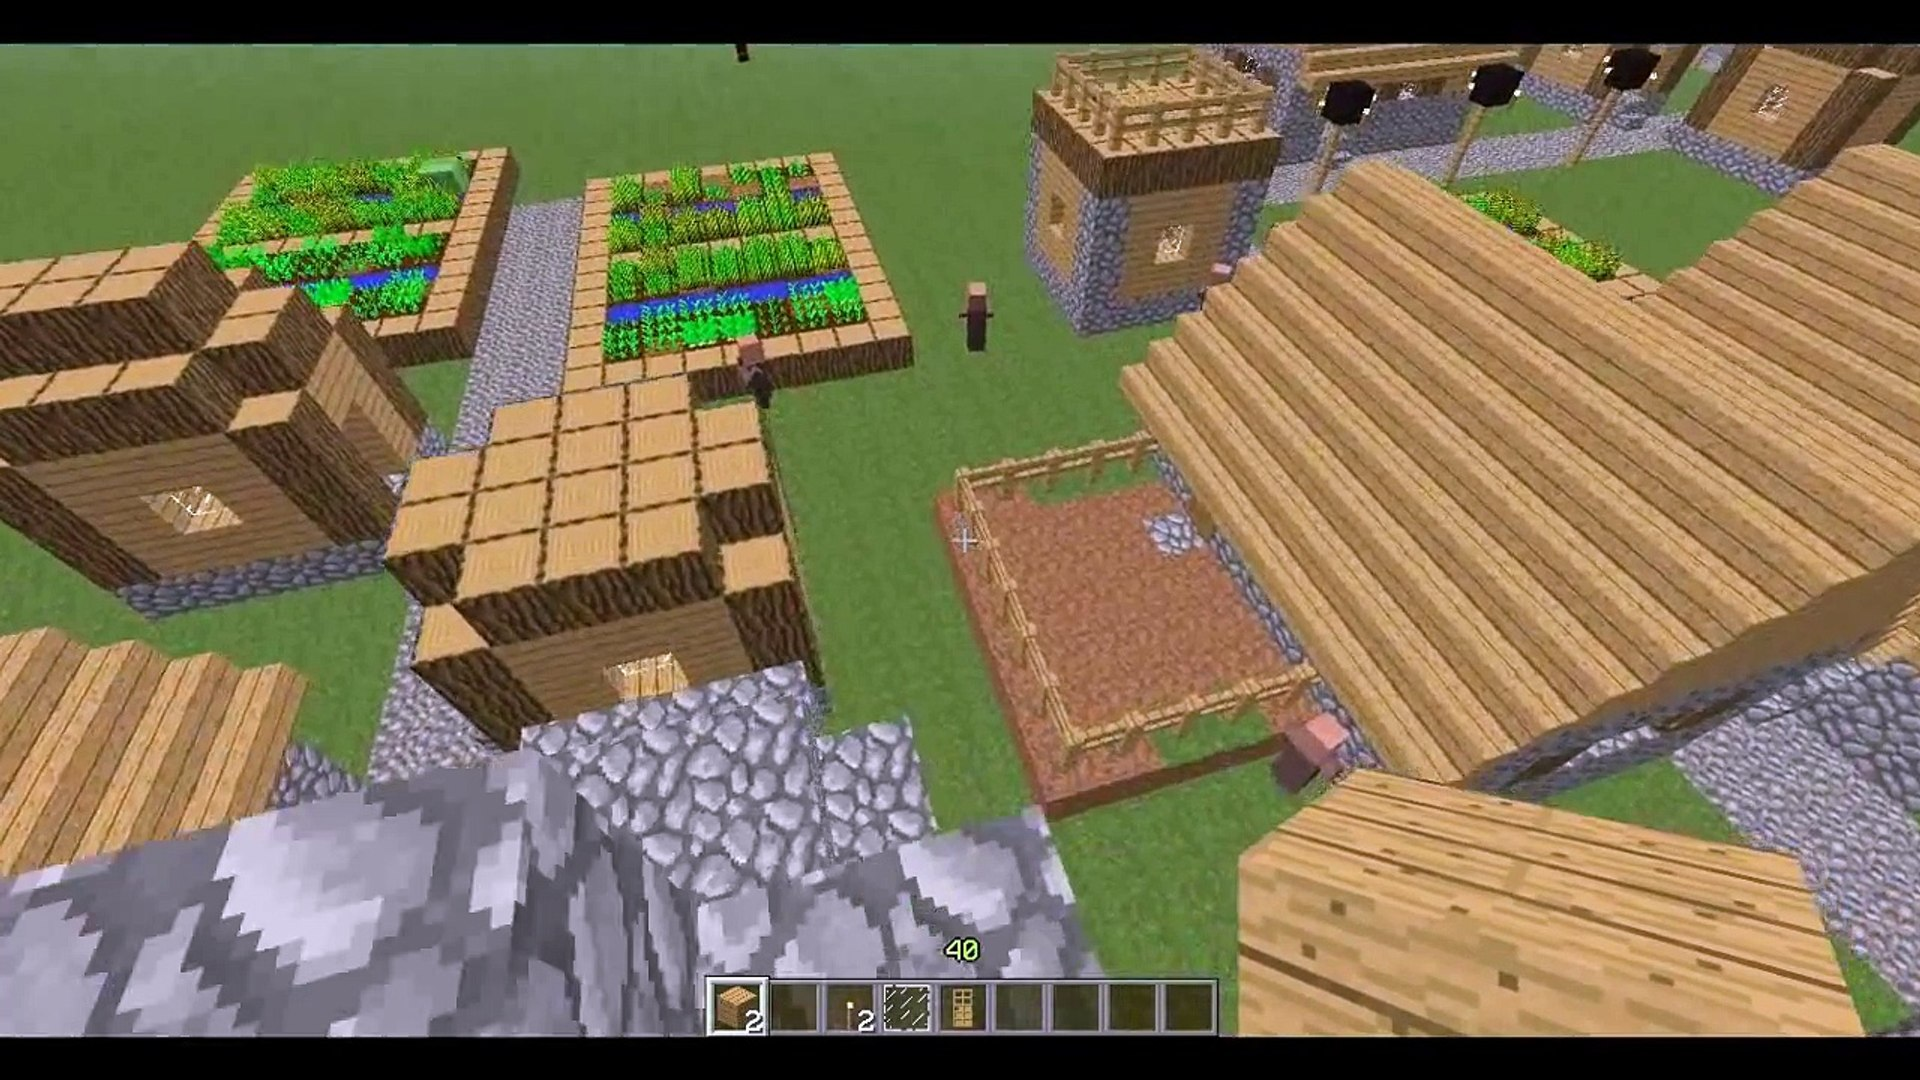 Minecraft 1 8 4 How to breed villagers and get easy emeralds!